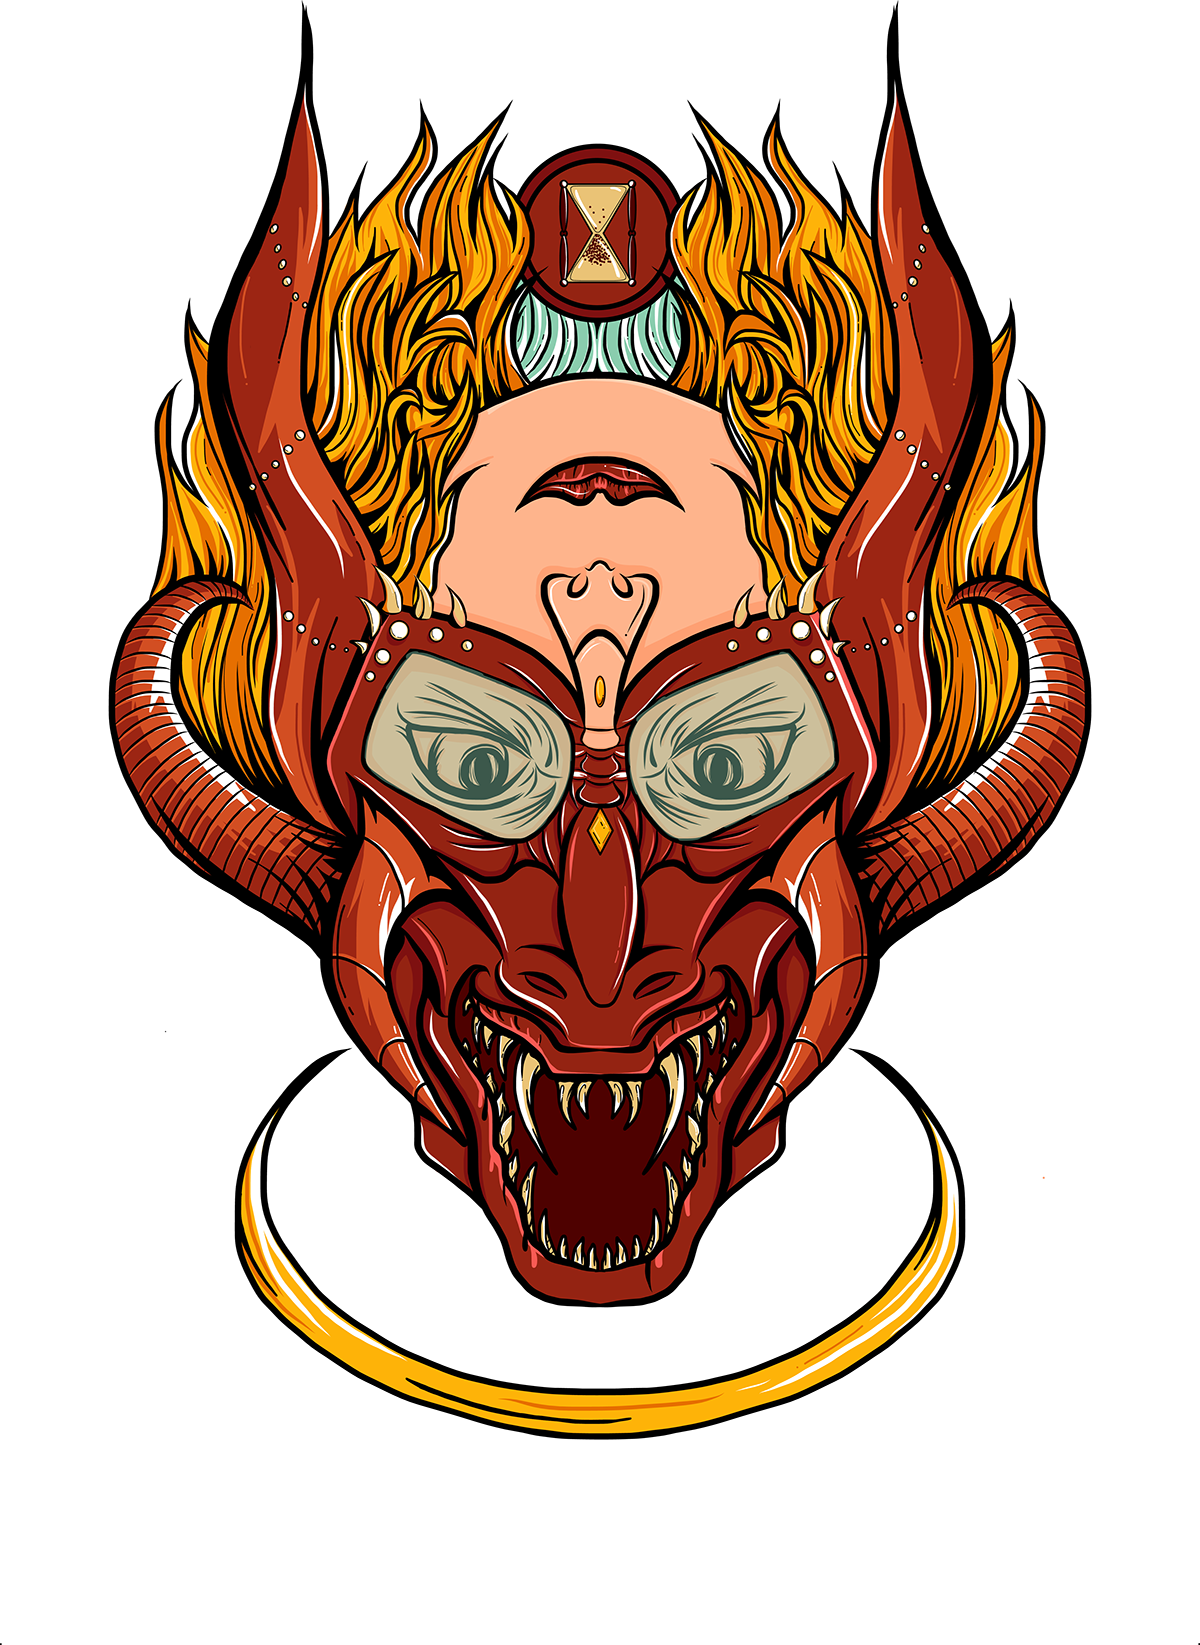 Seven deadly sins wrath and patience illustration on behance i ended up going with orange and peach colors for patience that flowed nicely with my chosen reds for wrath biocorpaavc Choice Image